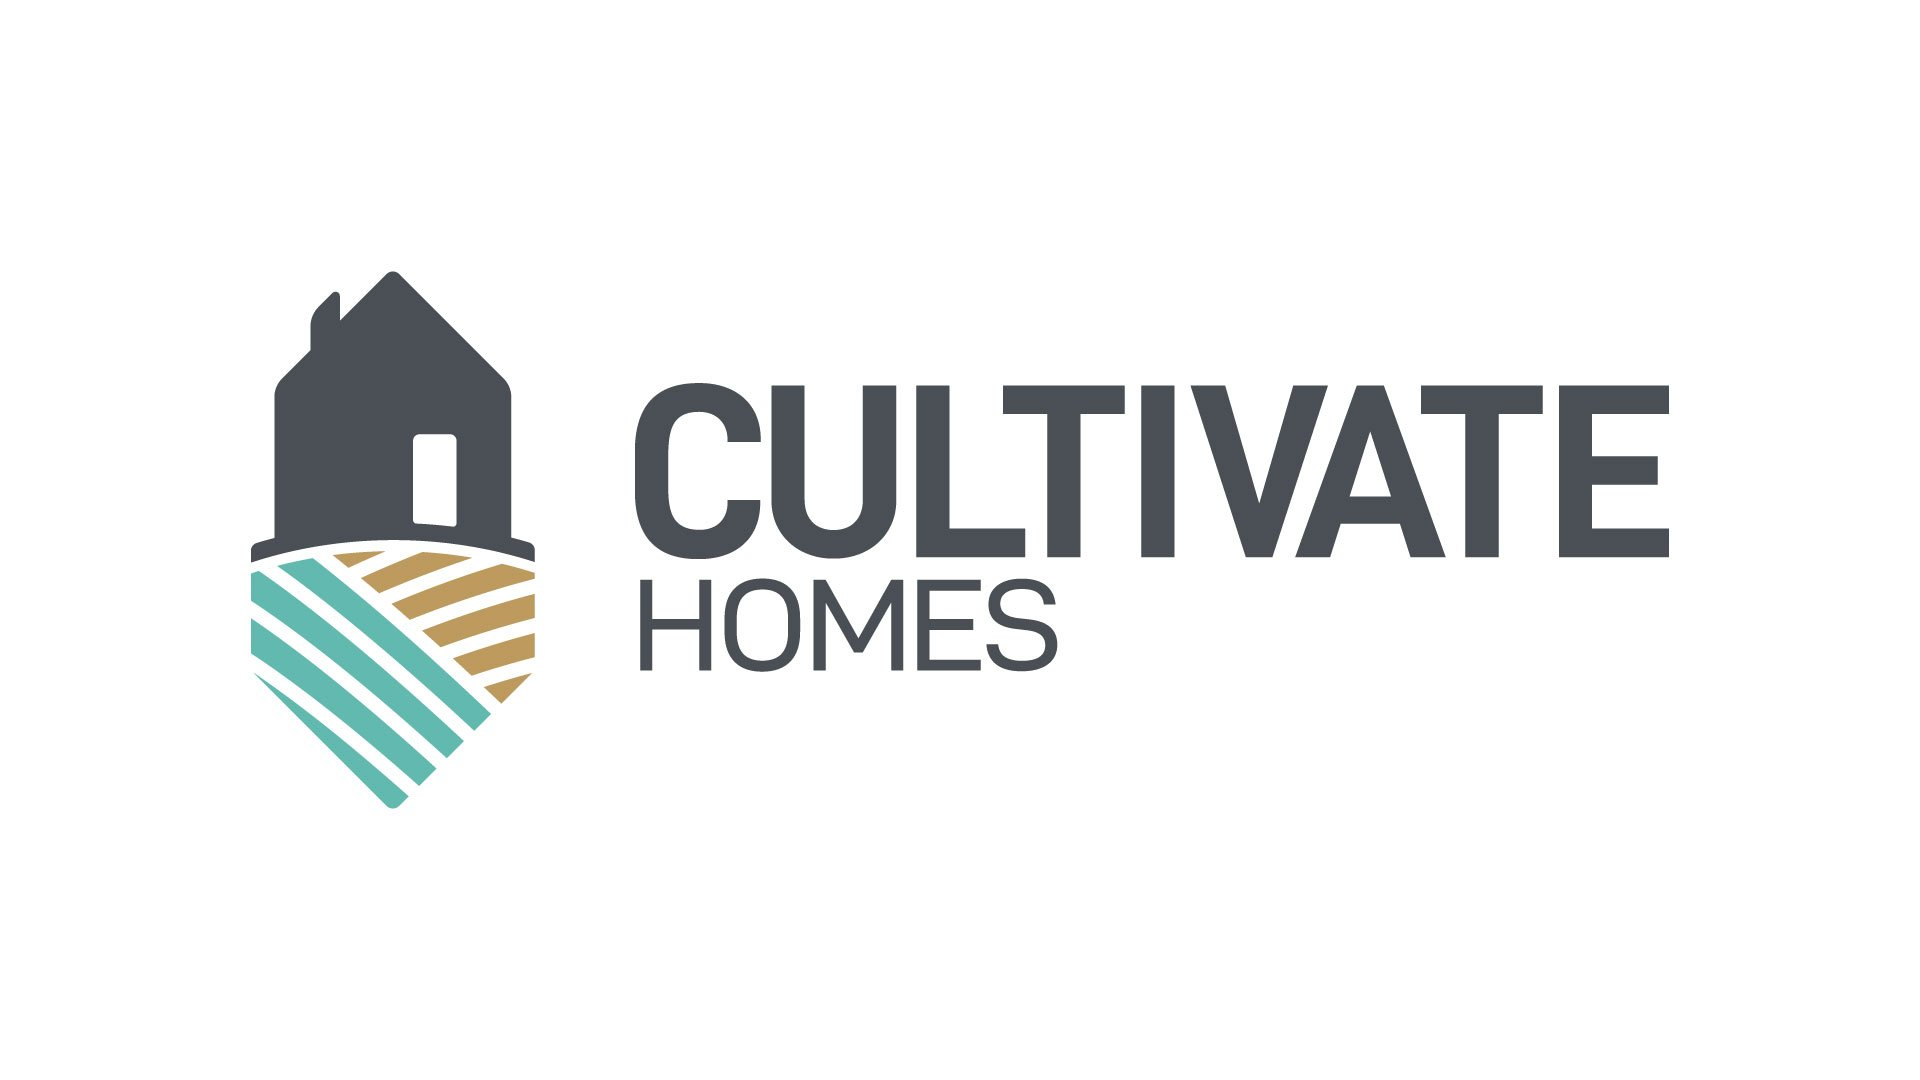 Cultivate Homes logo